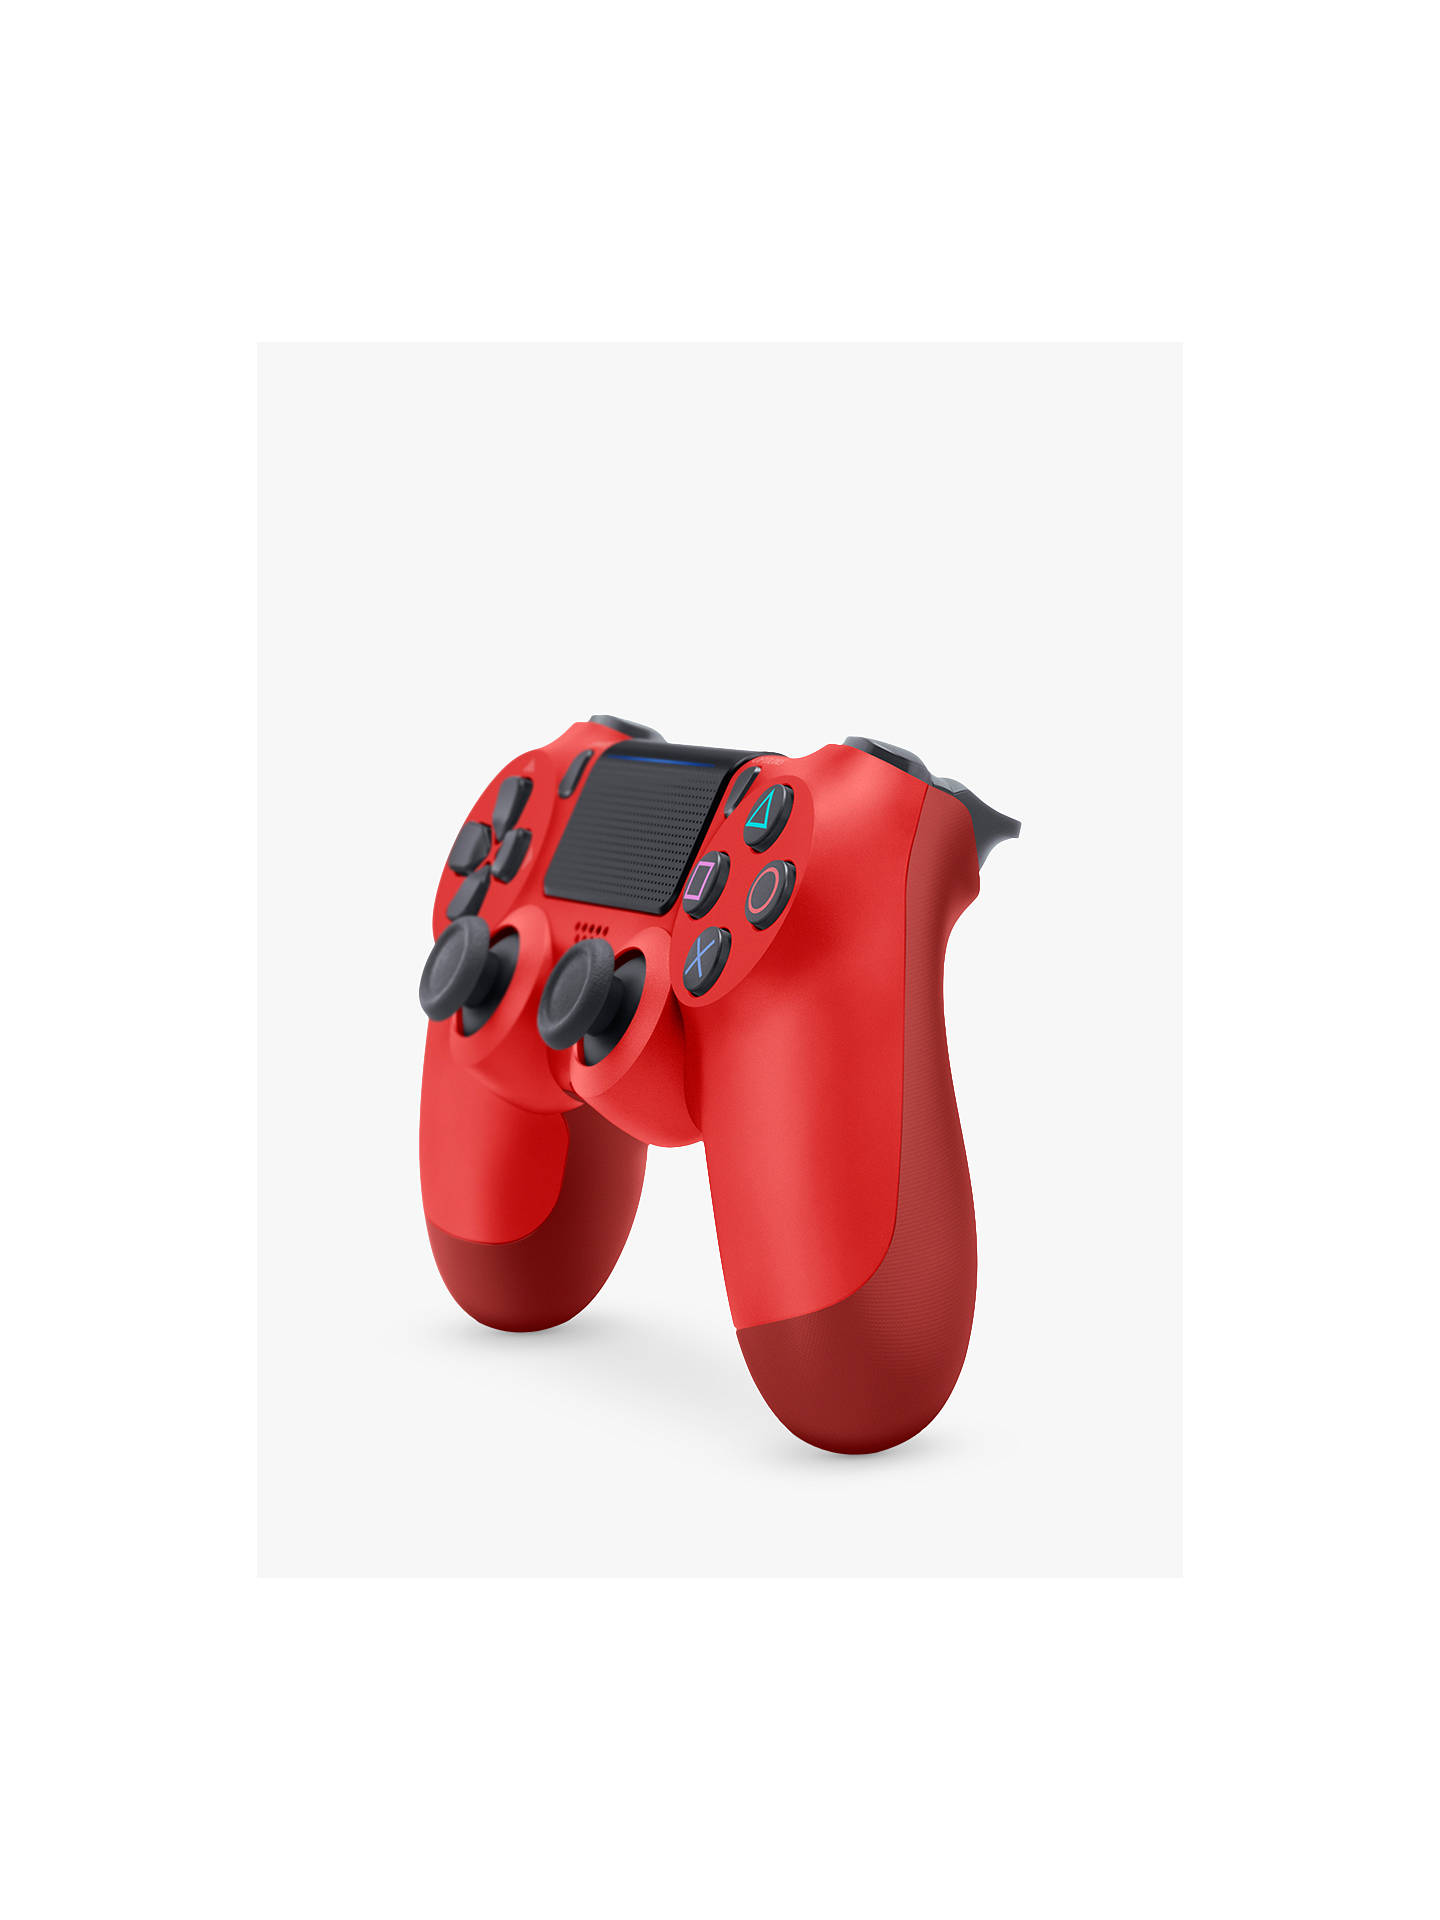 BuySony PS4 DUALSHOCK 4 Wireless Controller, Magma Red Online at johnlewis.com